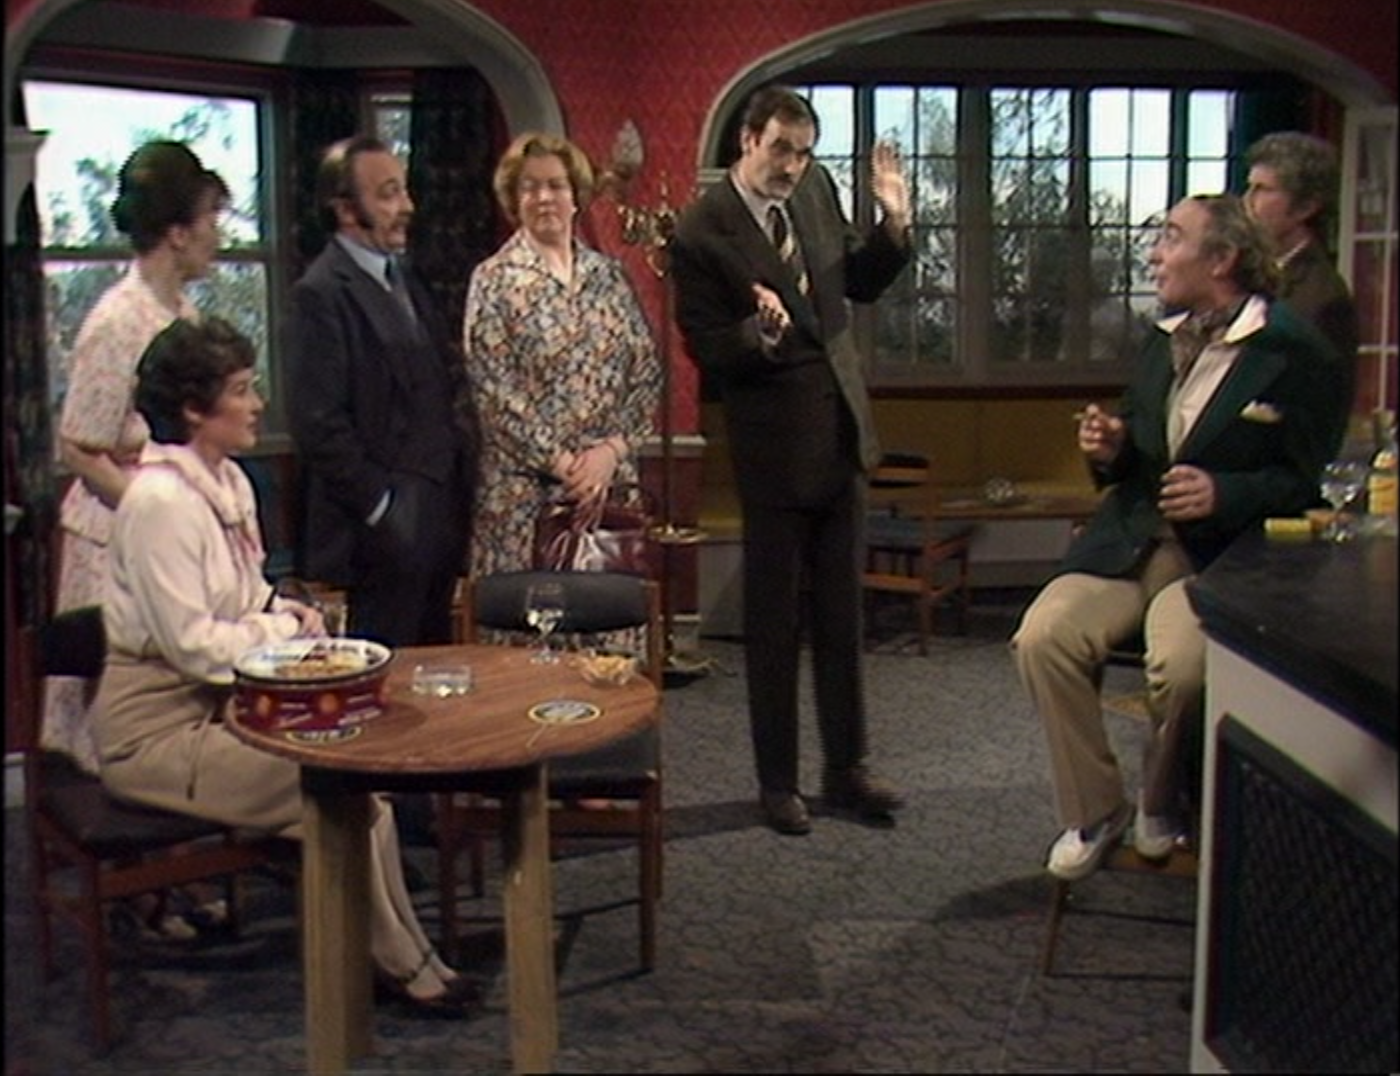 basil_anniversary_fawlty_towers.png